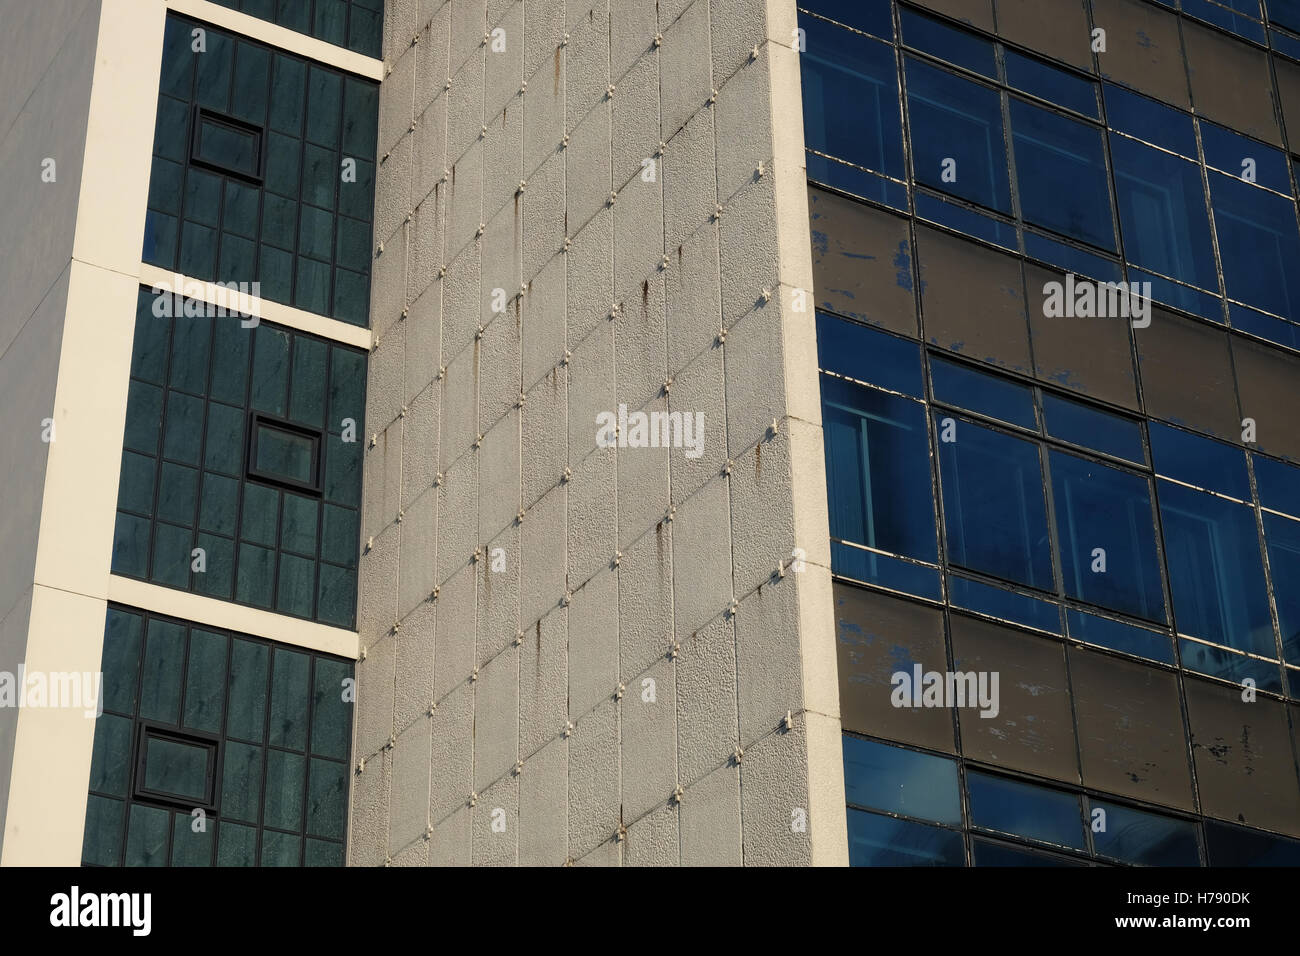 1960s Office Building Stock Photos & 1960s Office Building